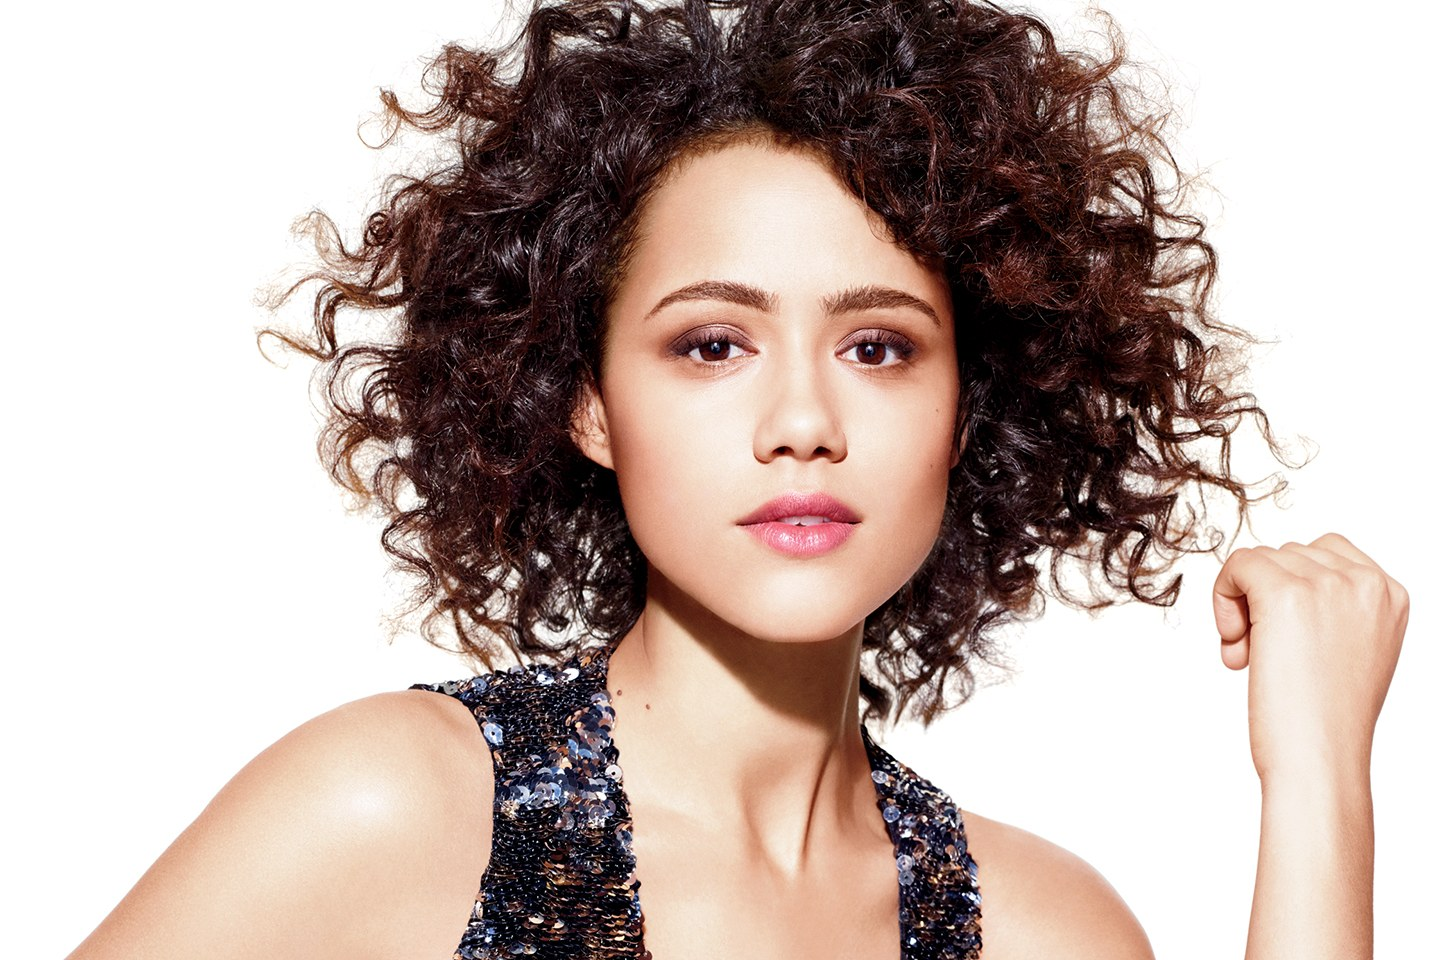 nathalie emmanuel for vanity fair